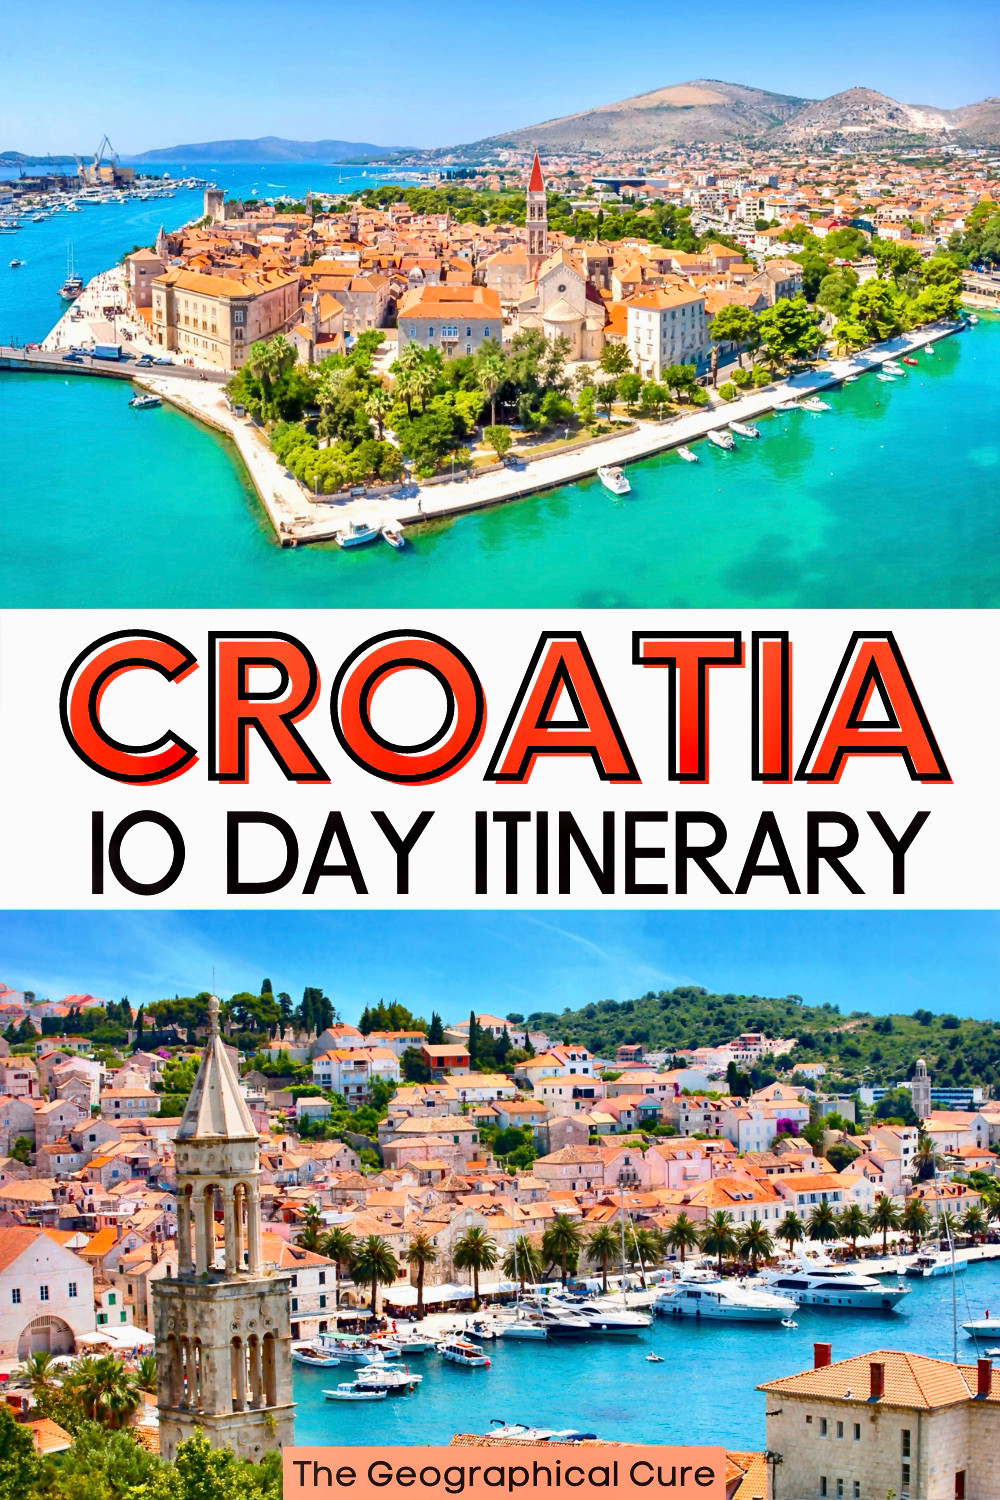 ultimate 10 day itinerary for Croatia